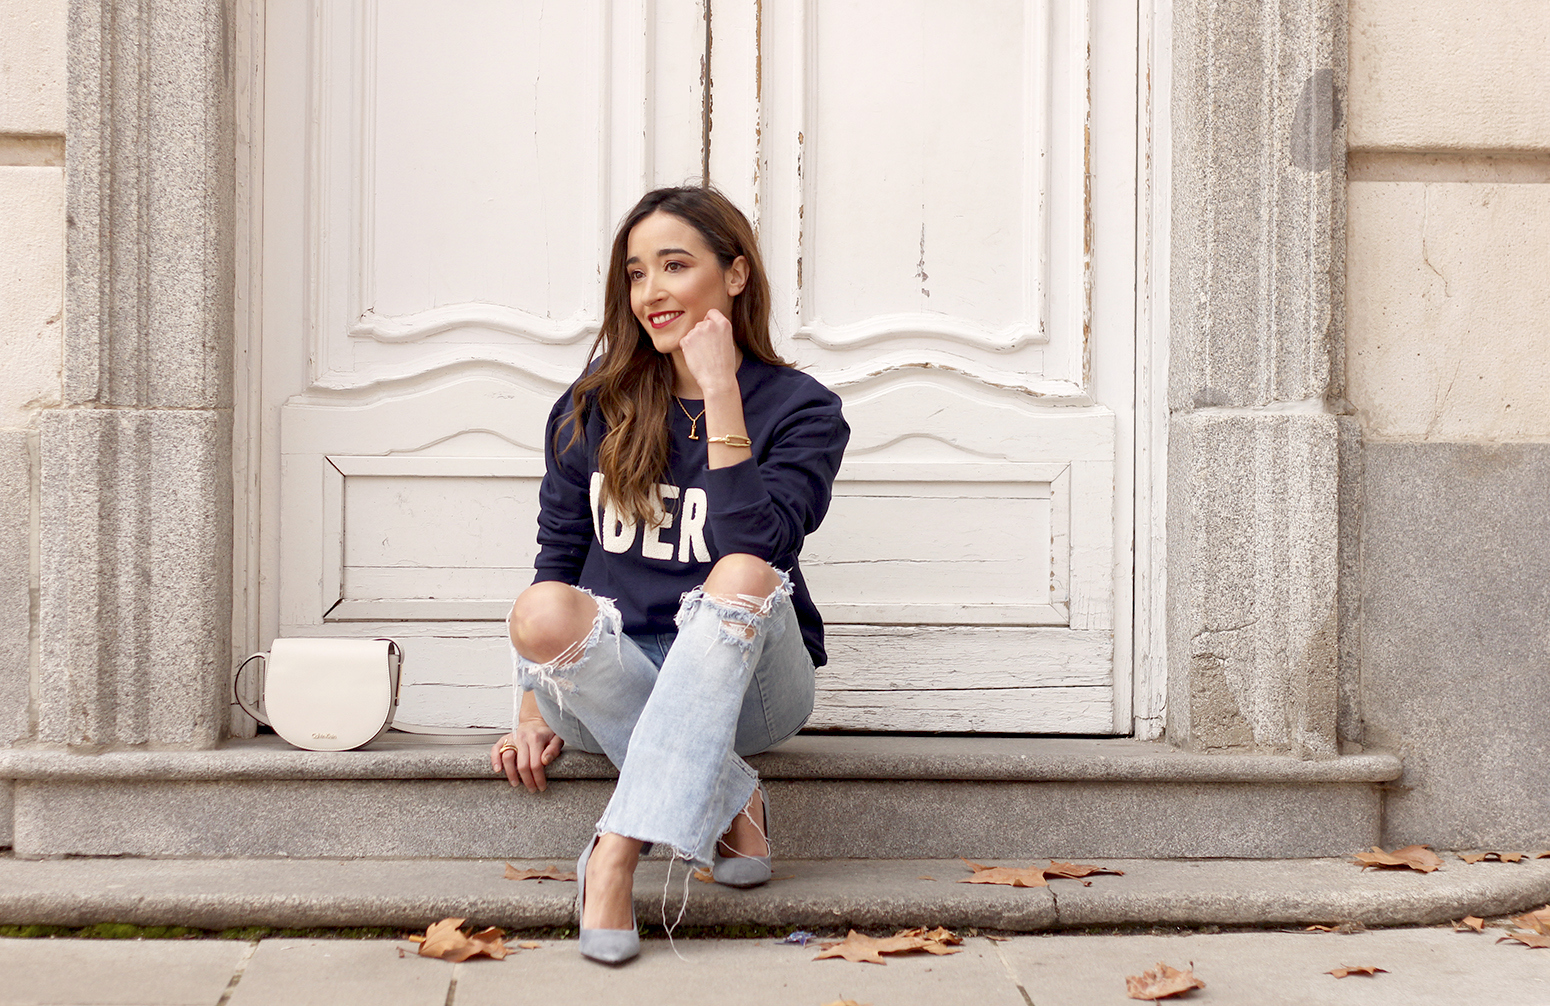 Sweatshirt ripped jeans clavin klein white bag high heels street style outfit 20199